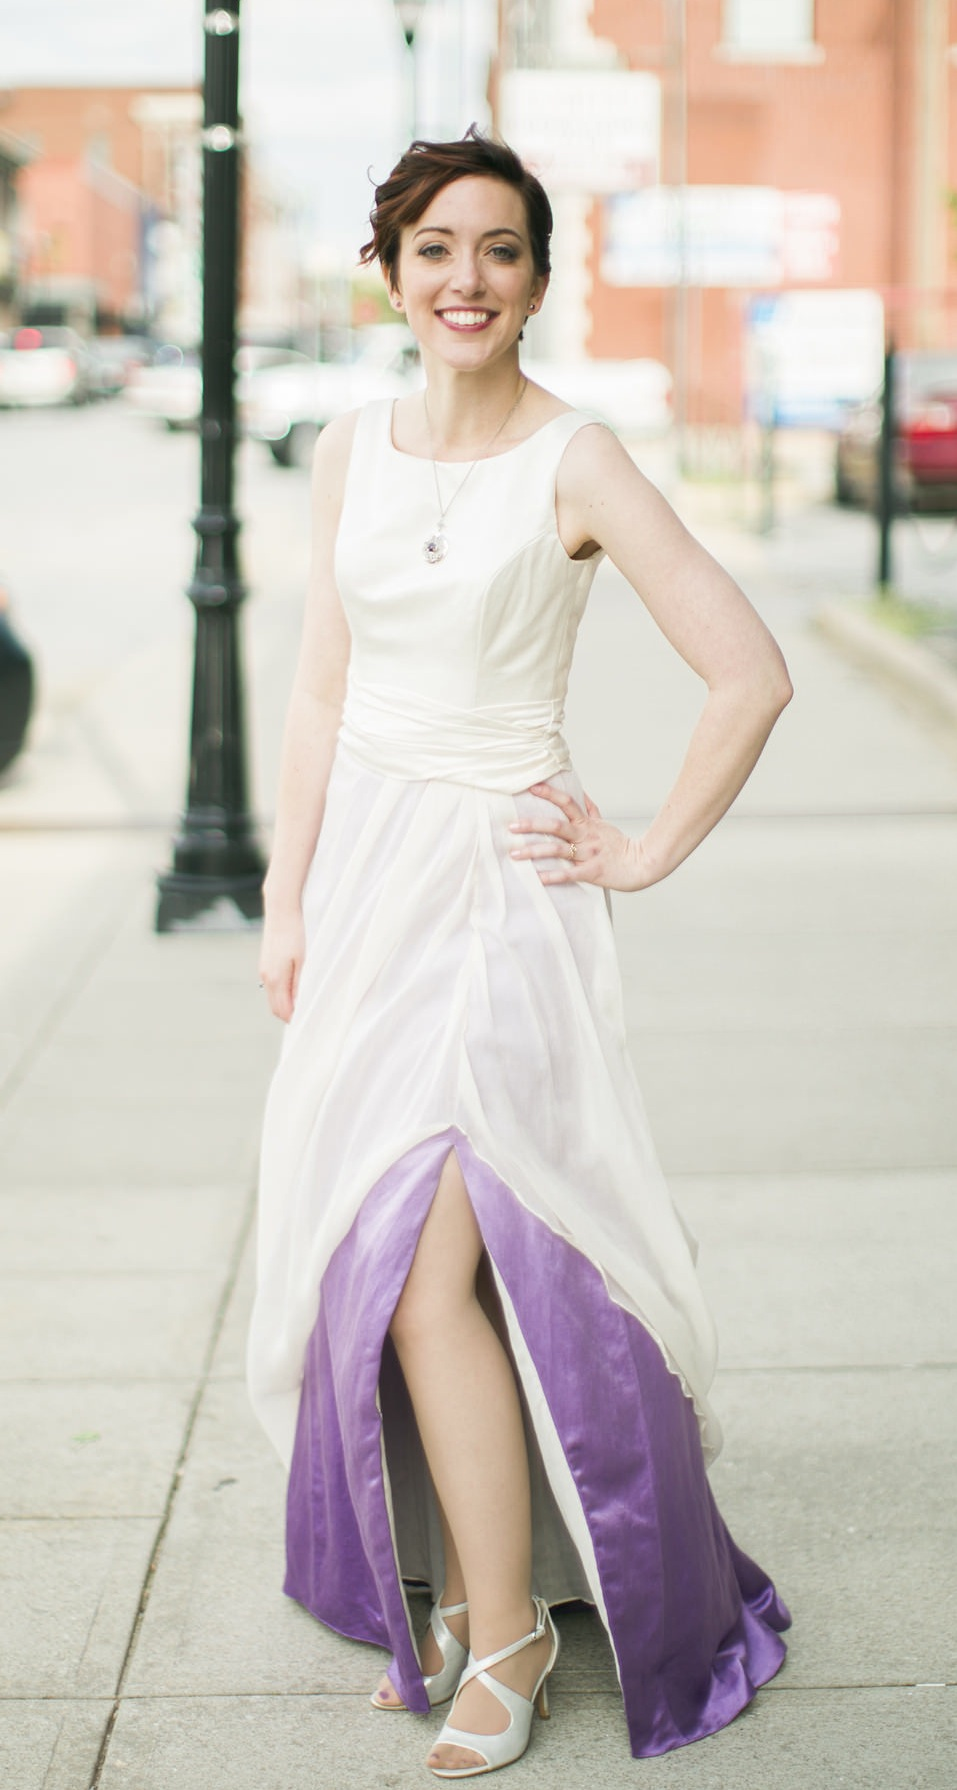 Blog wedding dress front slit with purple ombre skirt gown ombrellifo Image collections